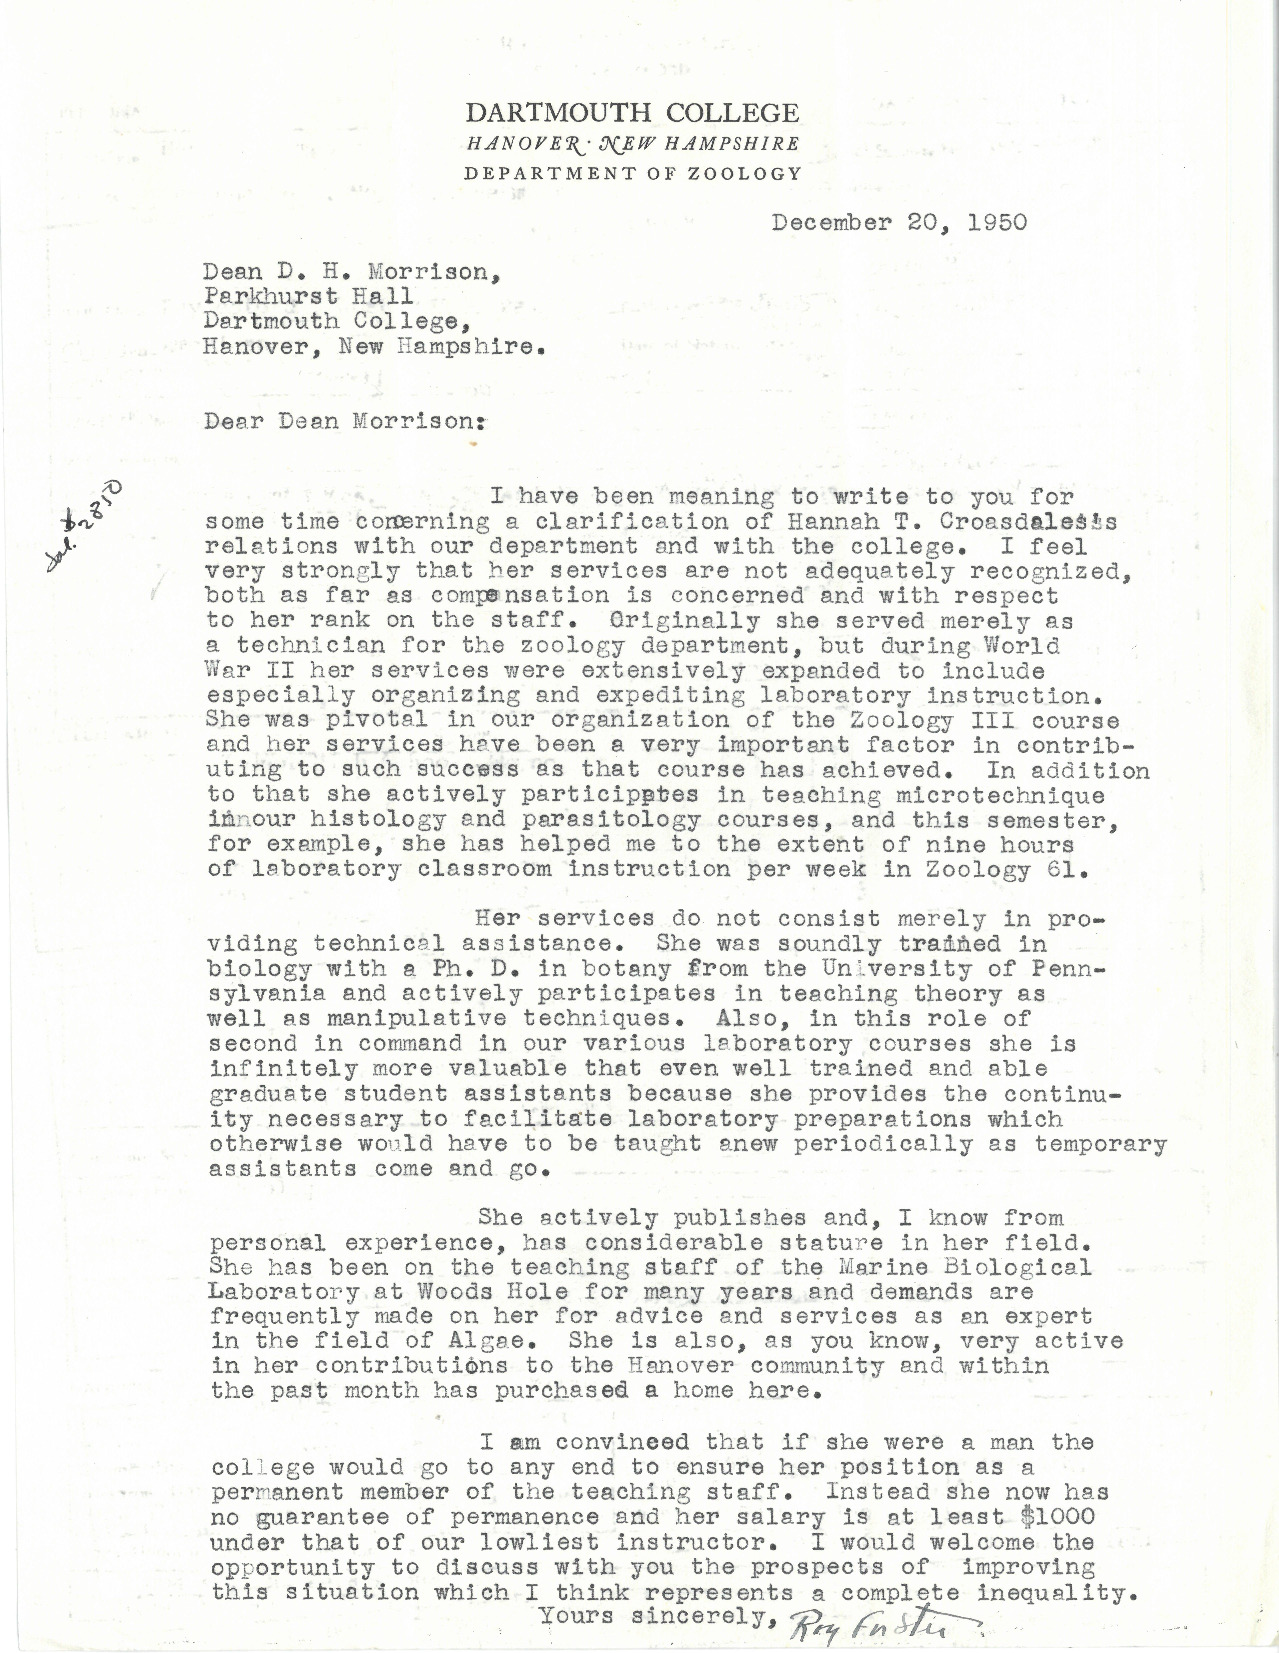 "Roy Forster, Professor of Biological Sciences, writes to Donald Morrison, Dean of the Faculty regarding Hannah Croasdale's rank and compensation in the Zoology Department, which he considered inadequate. He notes that, ""I am convinced that if she were a man the college would go to any end to ensure her position as a permanent member of the teaching staff."""